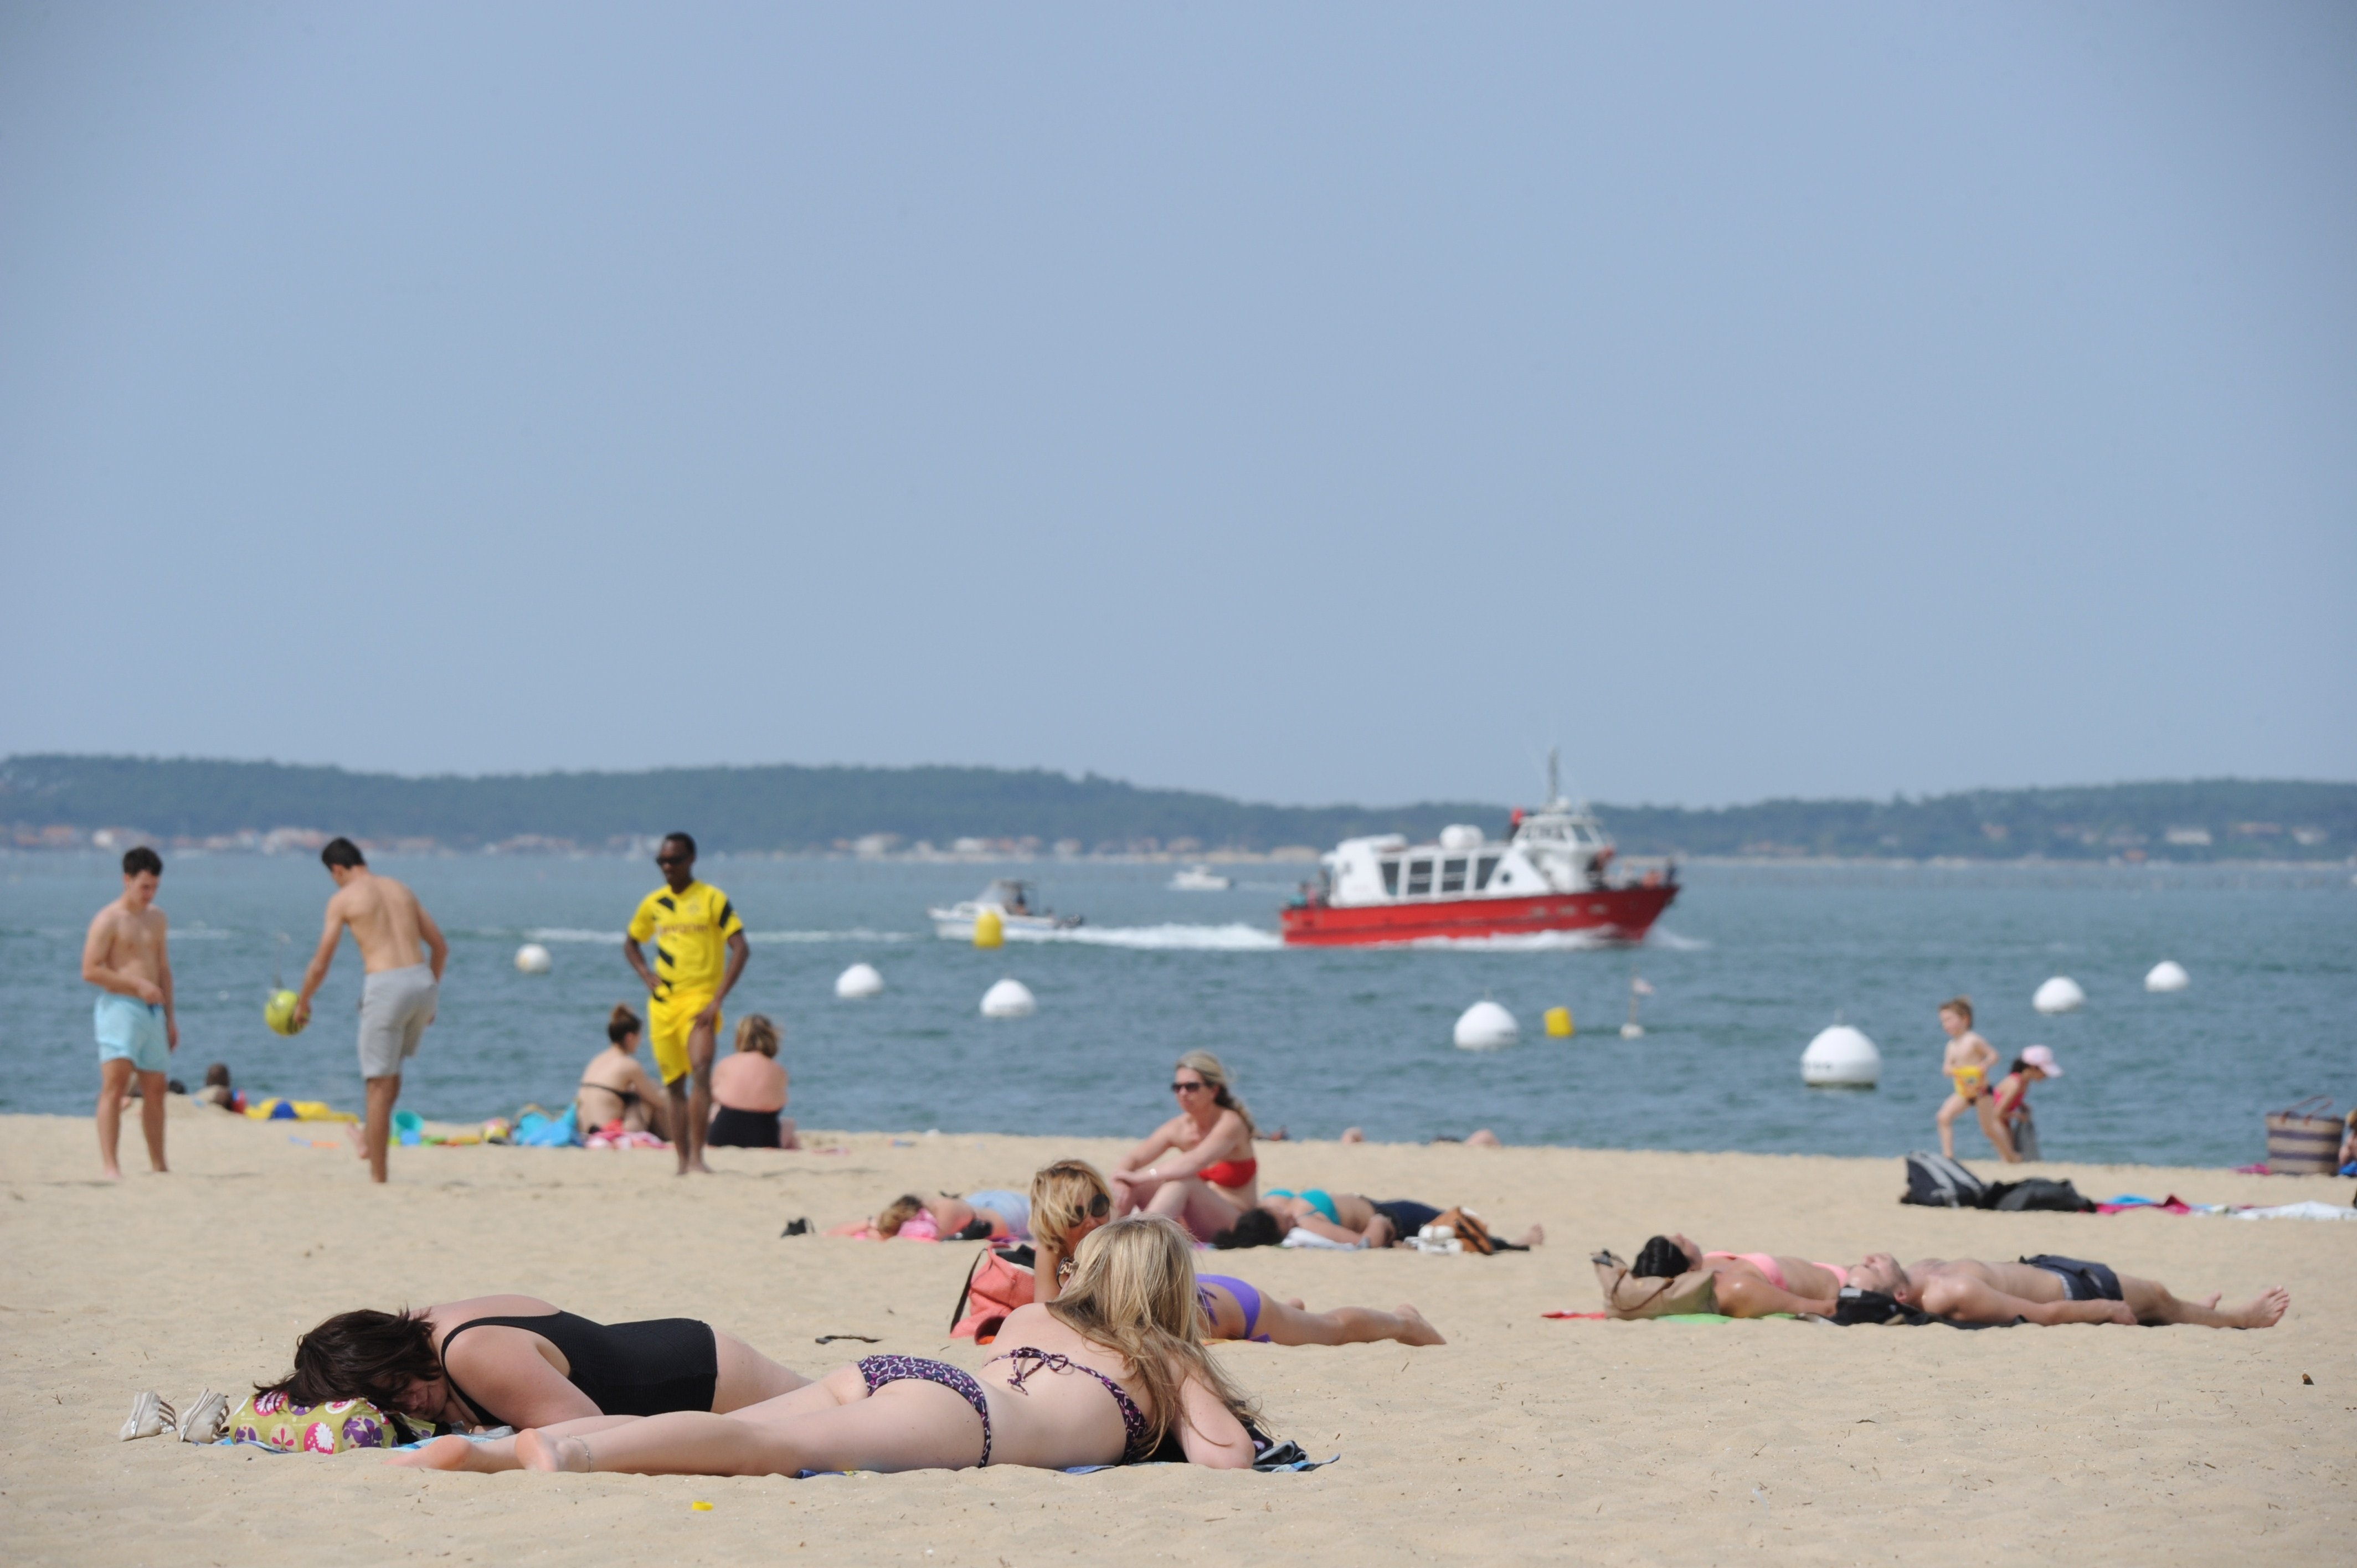 People Tanning On The Beach Source Mehdi Fedouachafpgetty Images B